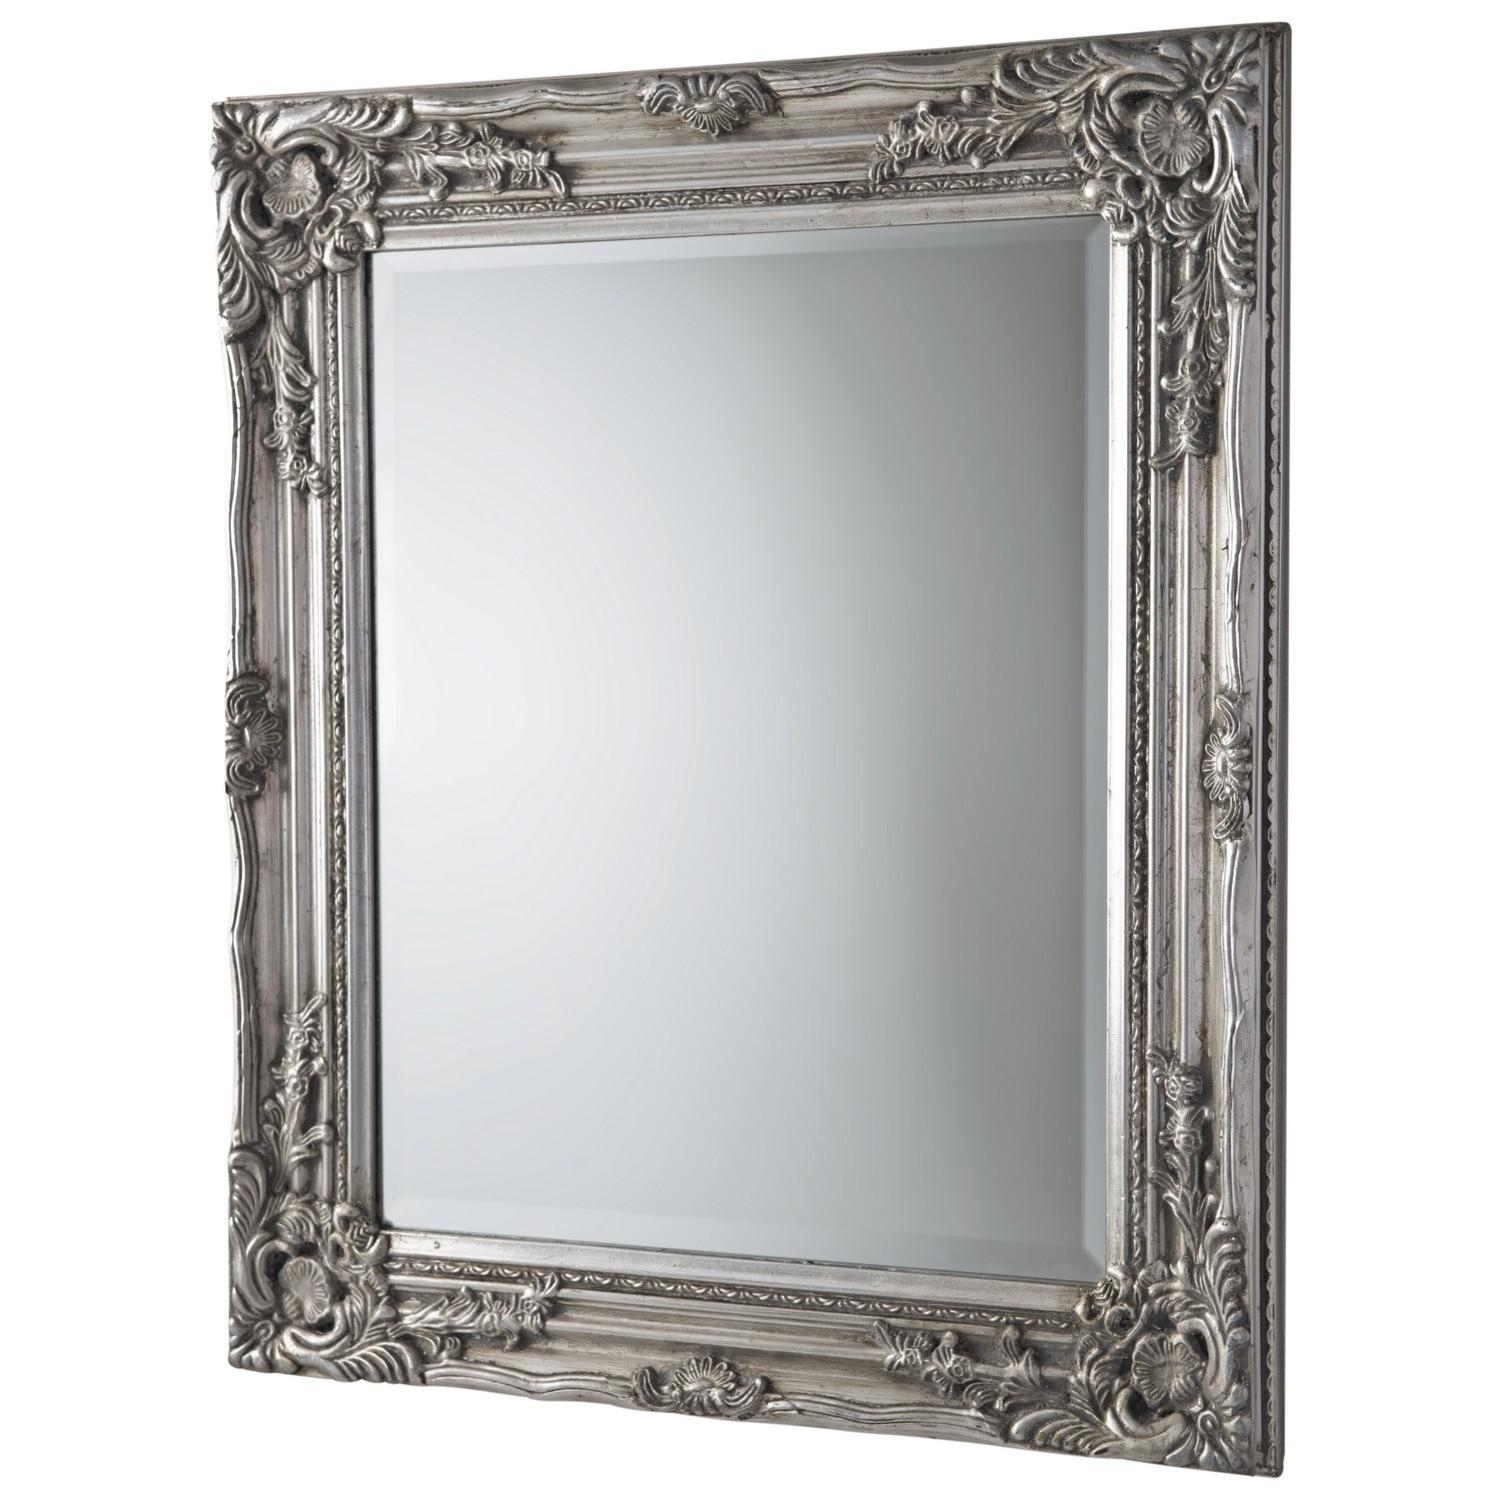 Antique Ornate Mirror Silver Throughout Silver Antique Mirror (Image 3 of 20)